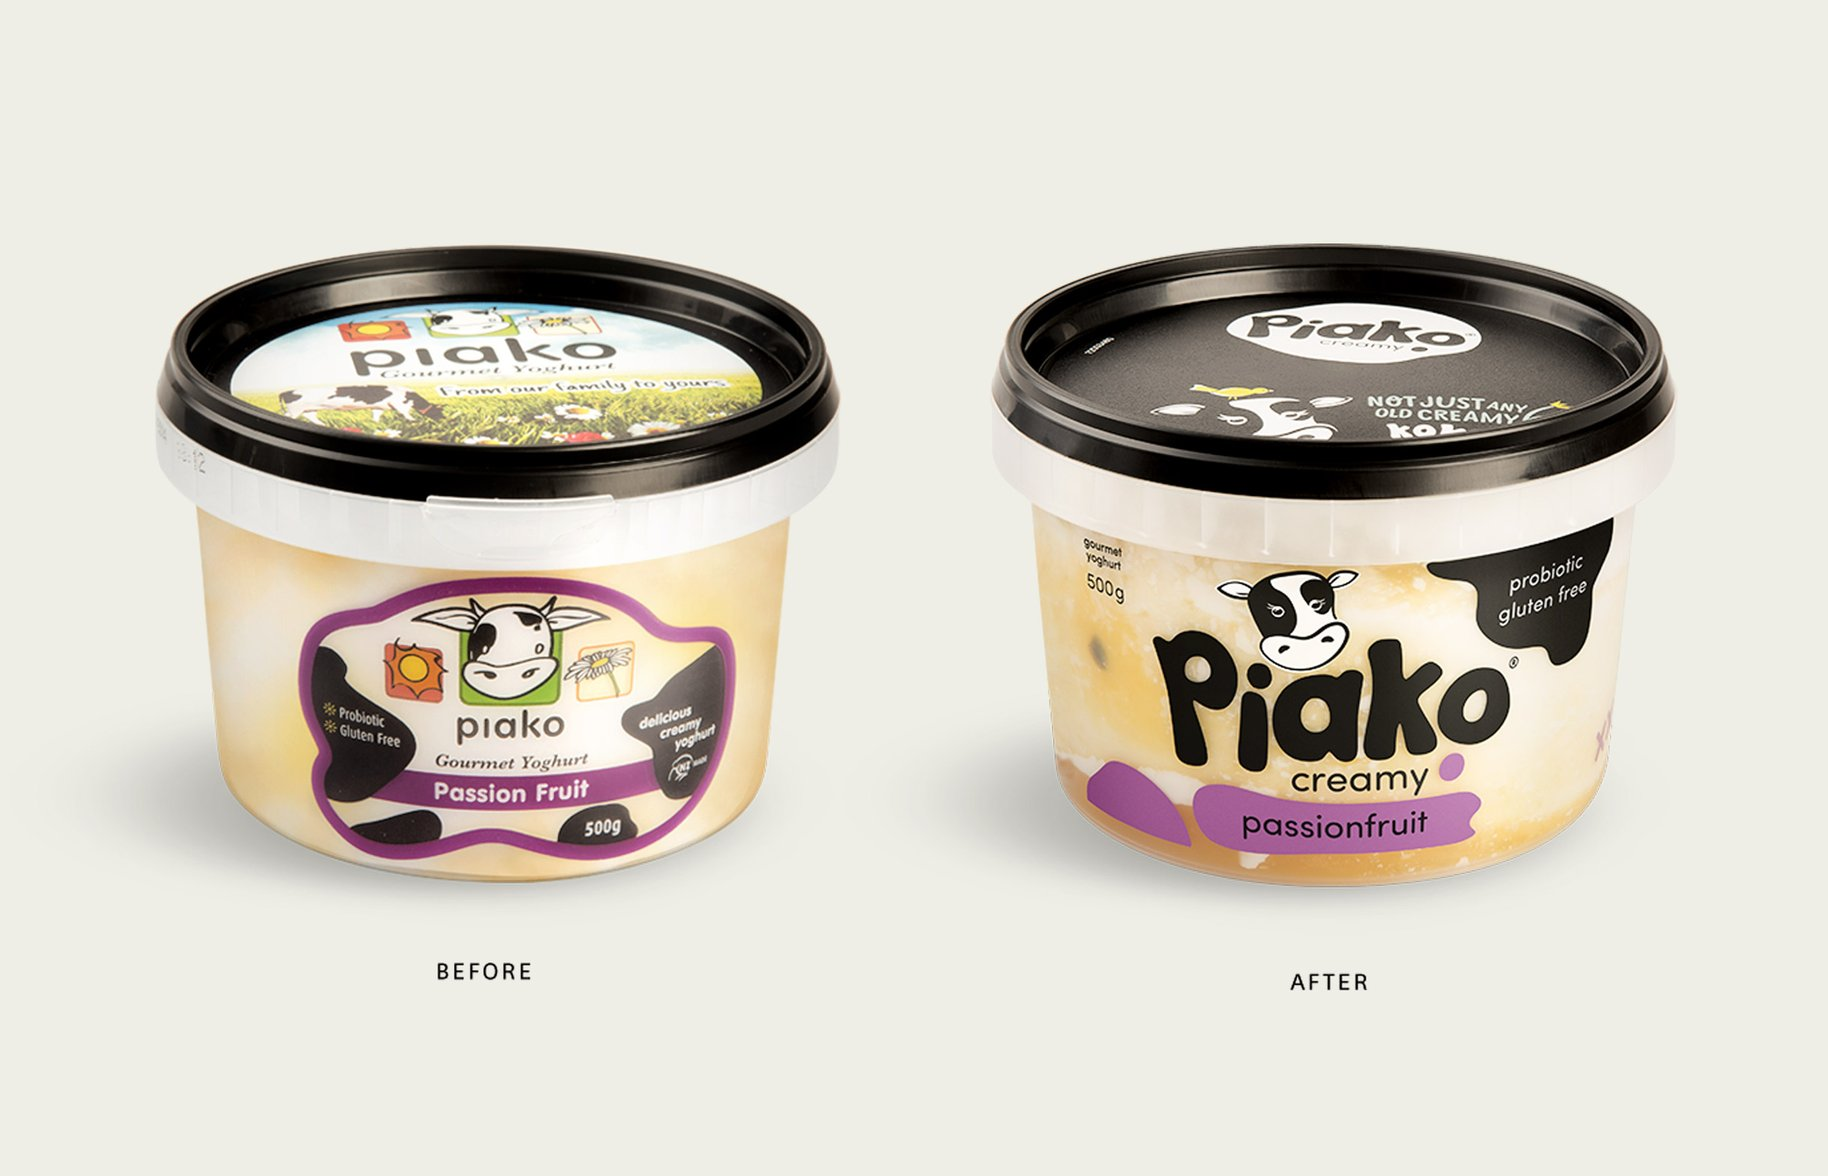 Piako Creamy yoghurt packaging before and after side